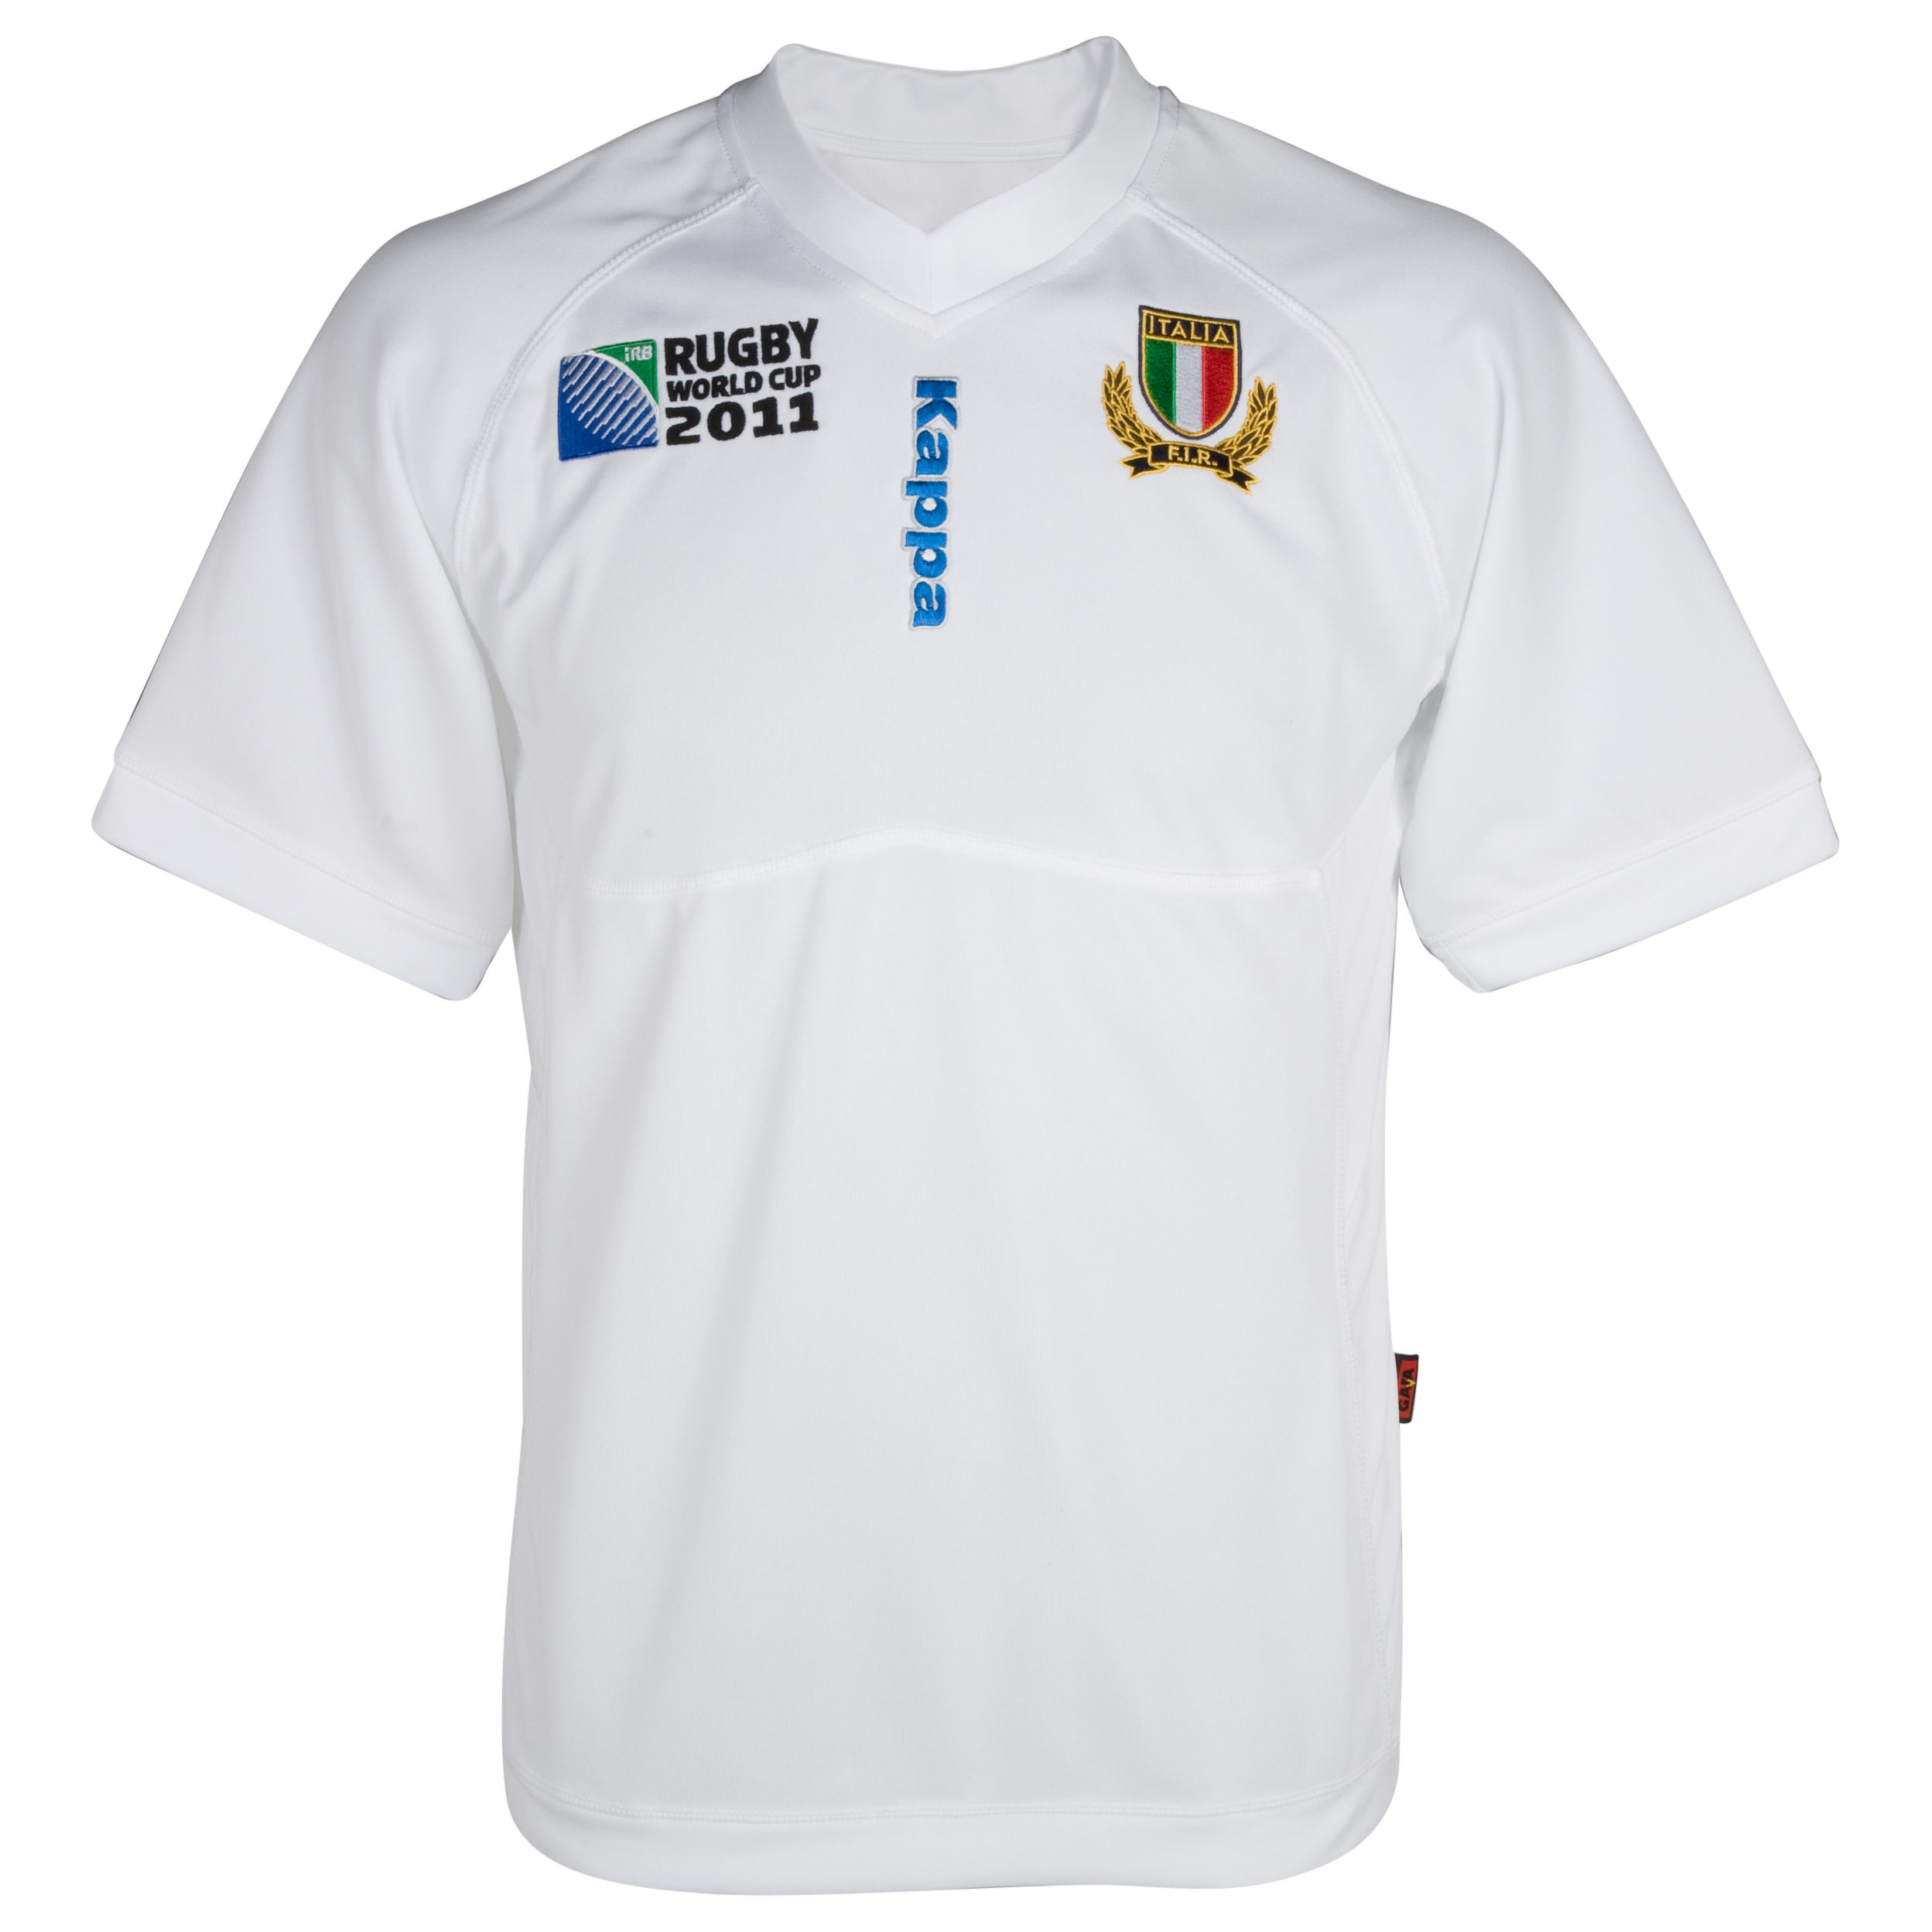 Italy Rugby World Cup Supporters Away Shirt 2011/12 - White. for 15€